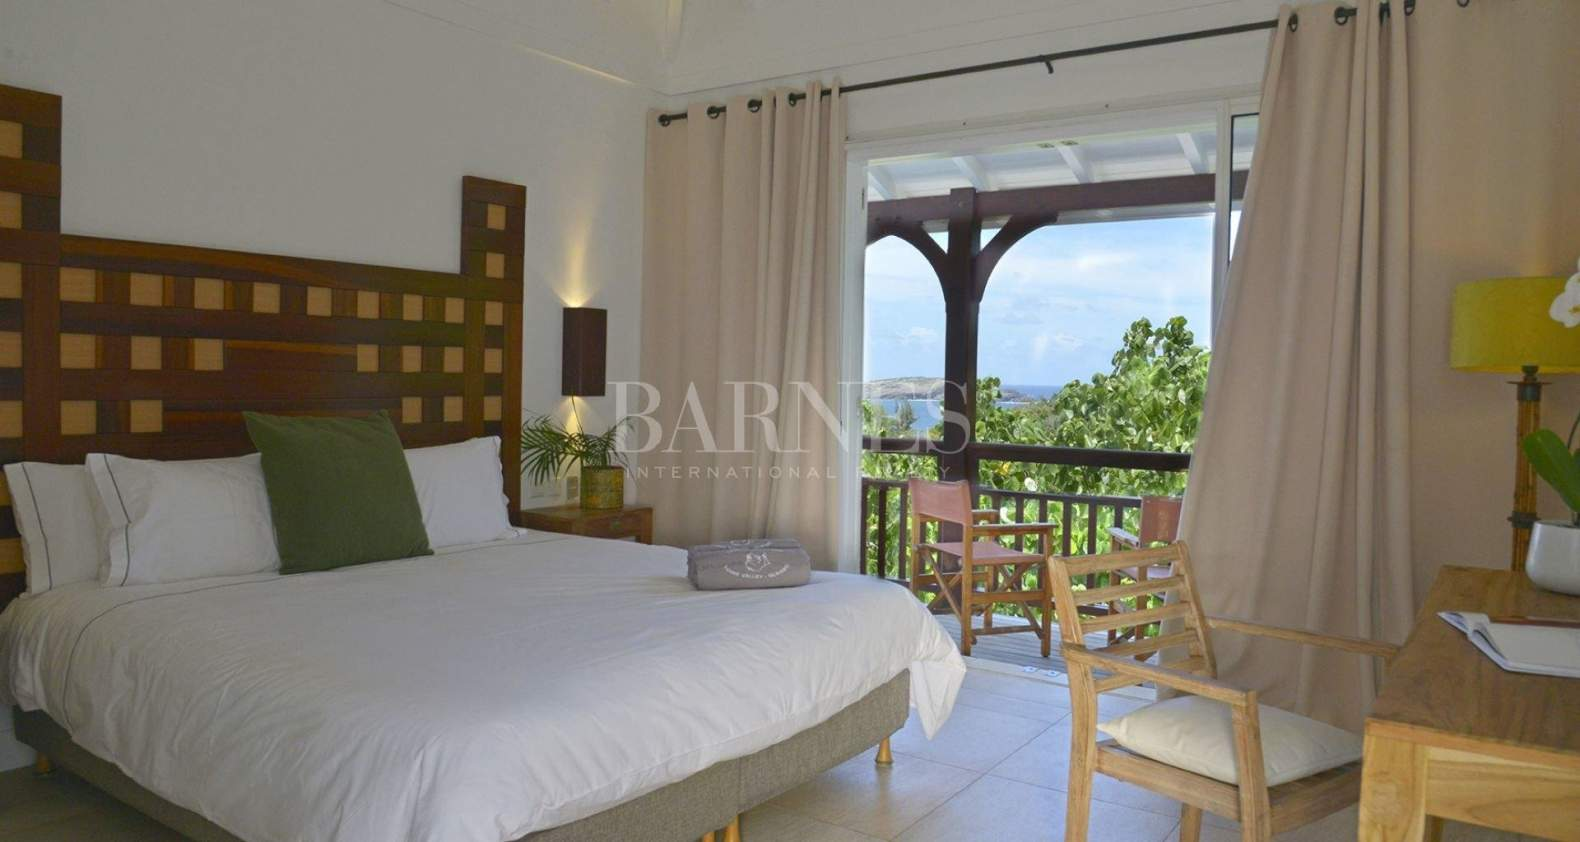 Saint-Barthélemy  - Villa 4 Bedrooms - picture 12